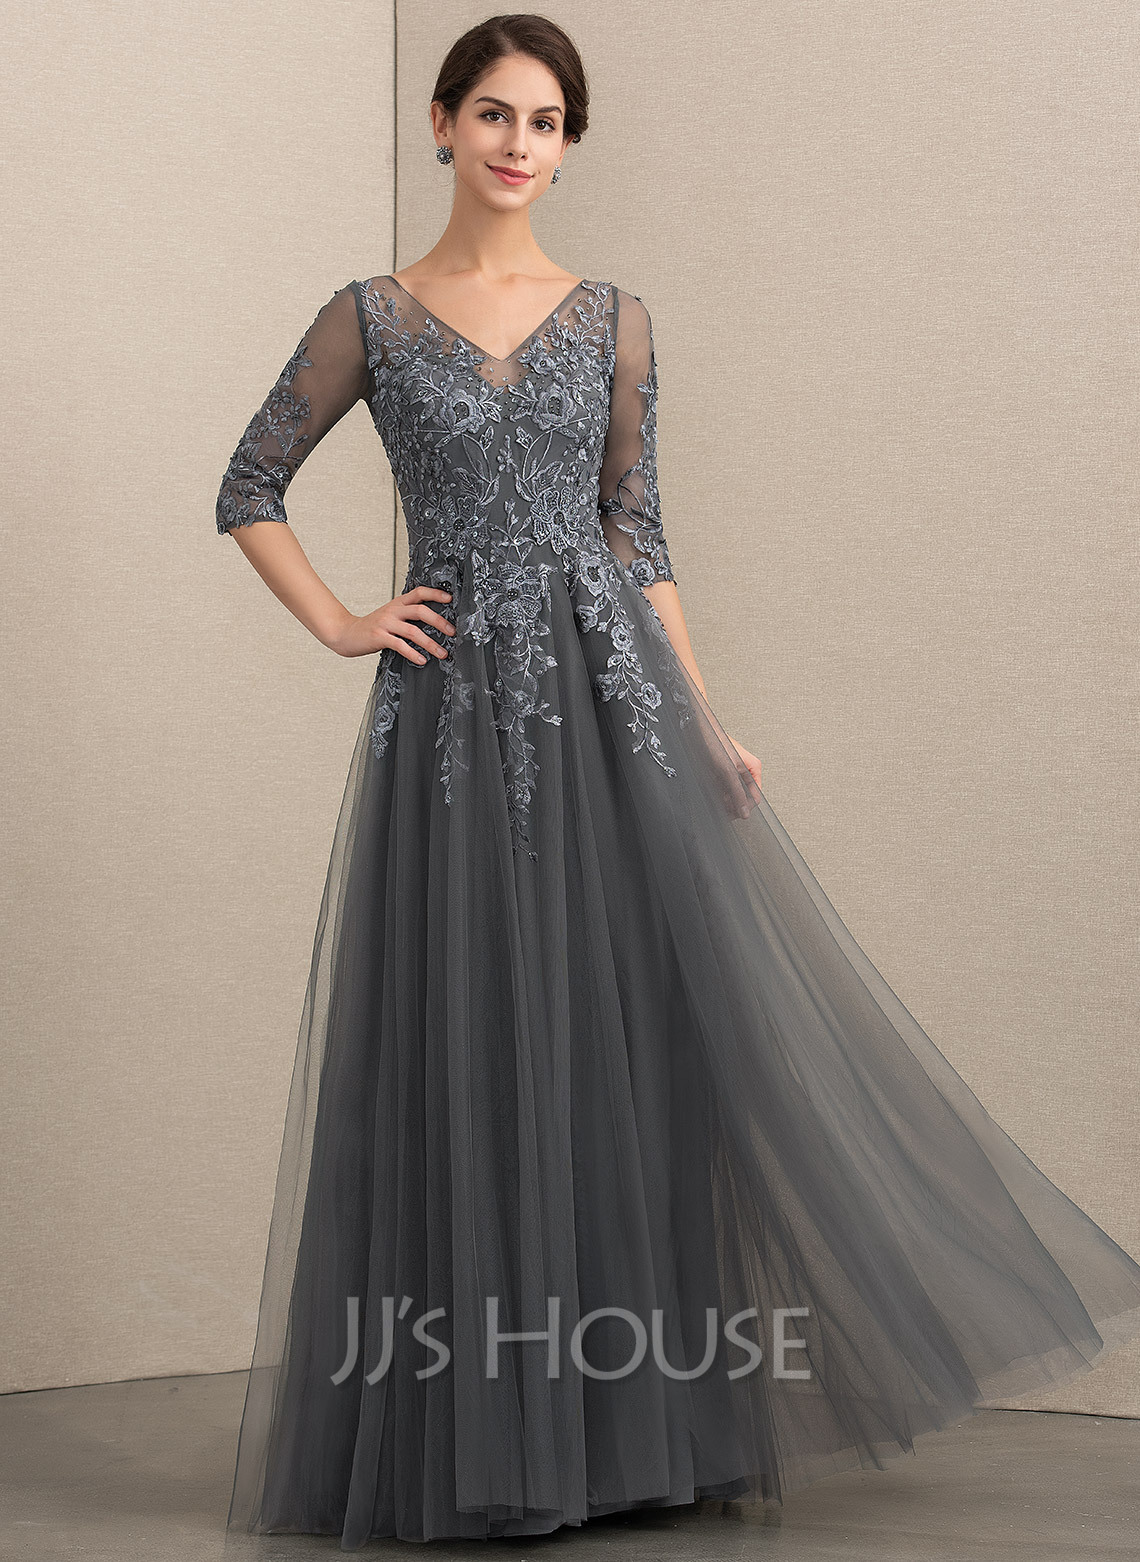 245db8e38ab A-Line V-neck Floor-Length Tulle Lace Mother of the Bride Dress. Loading  zoom